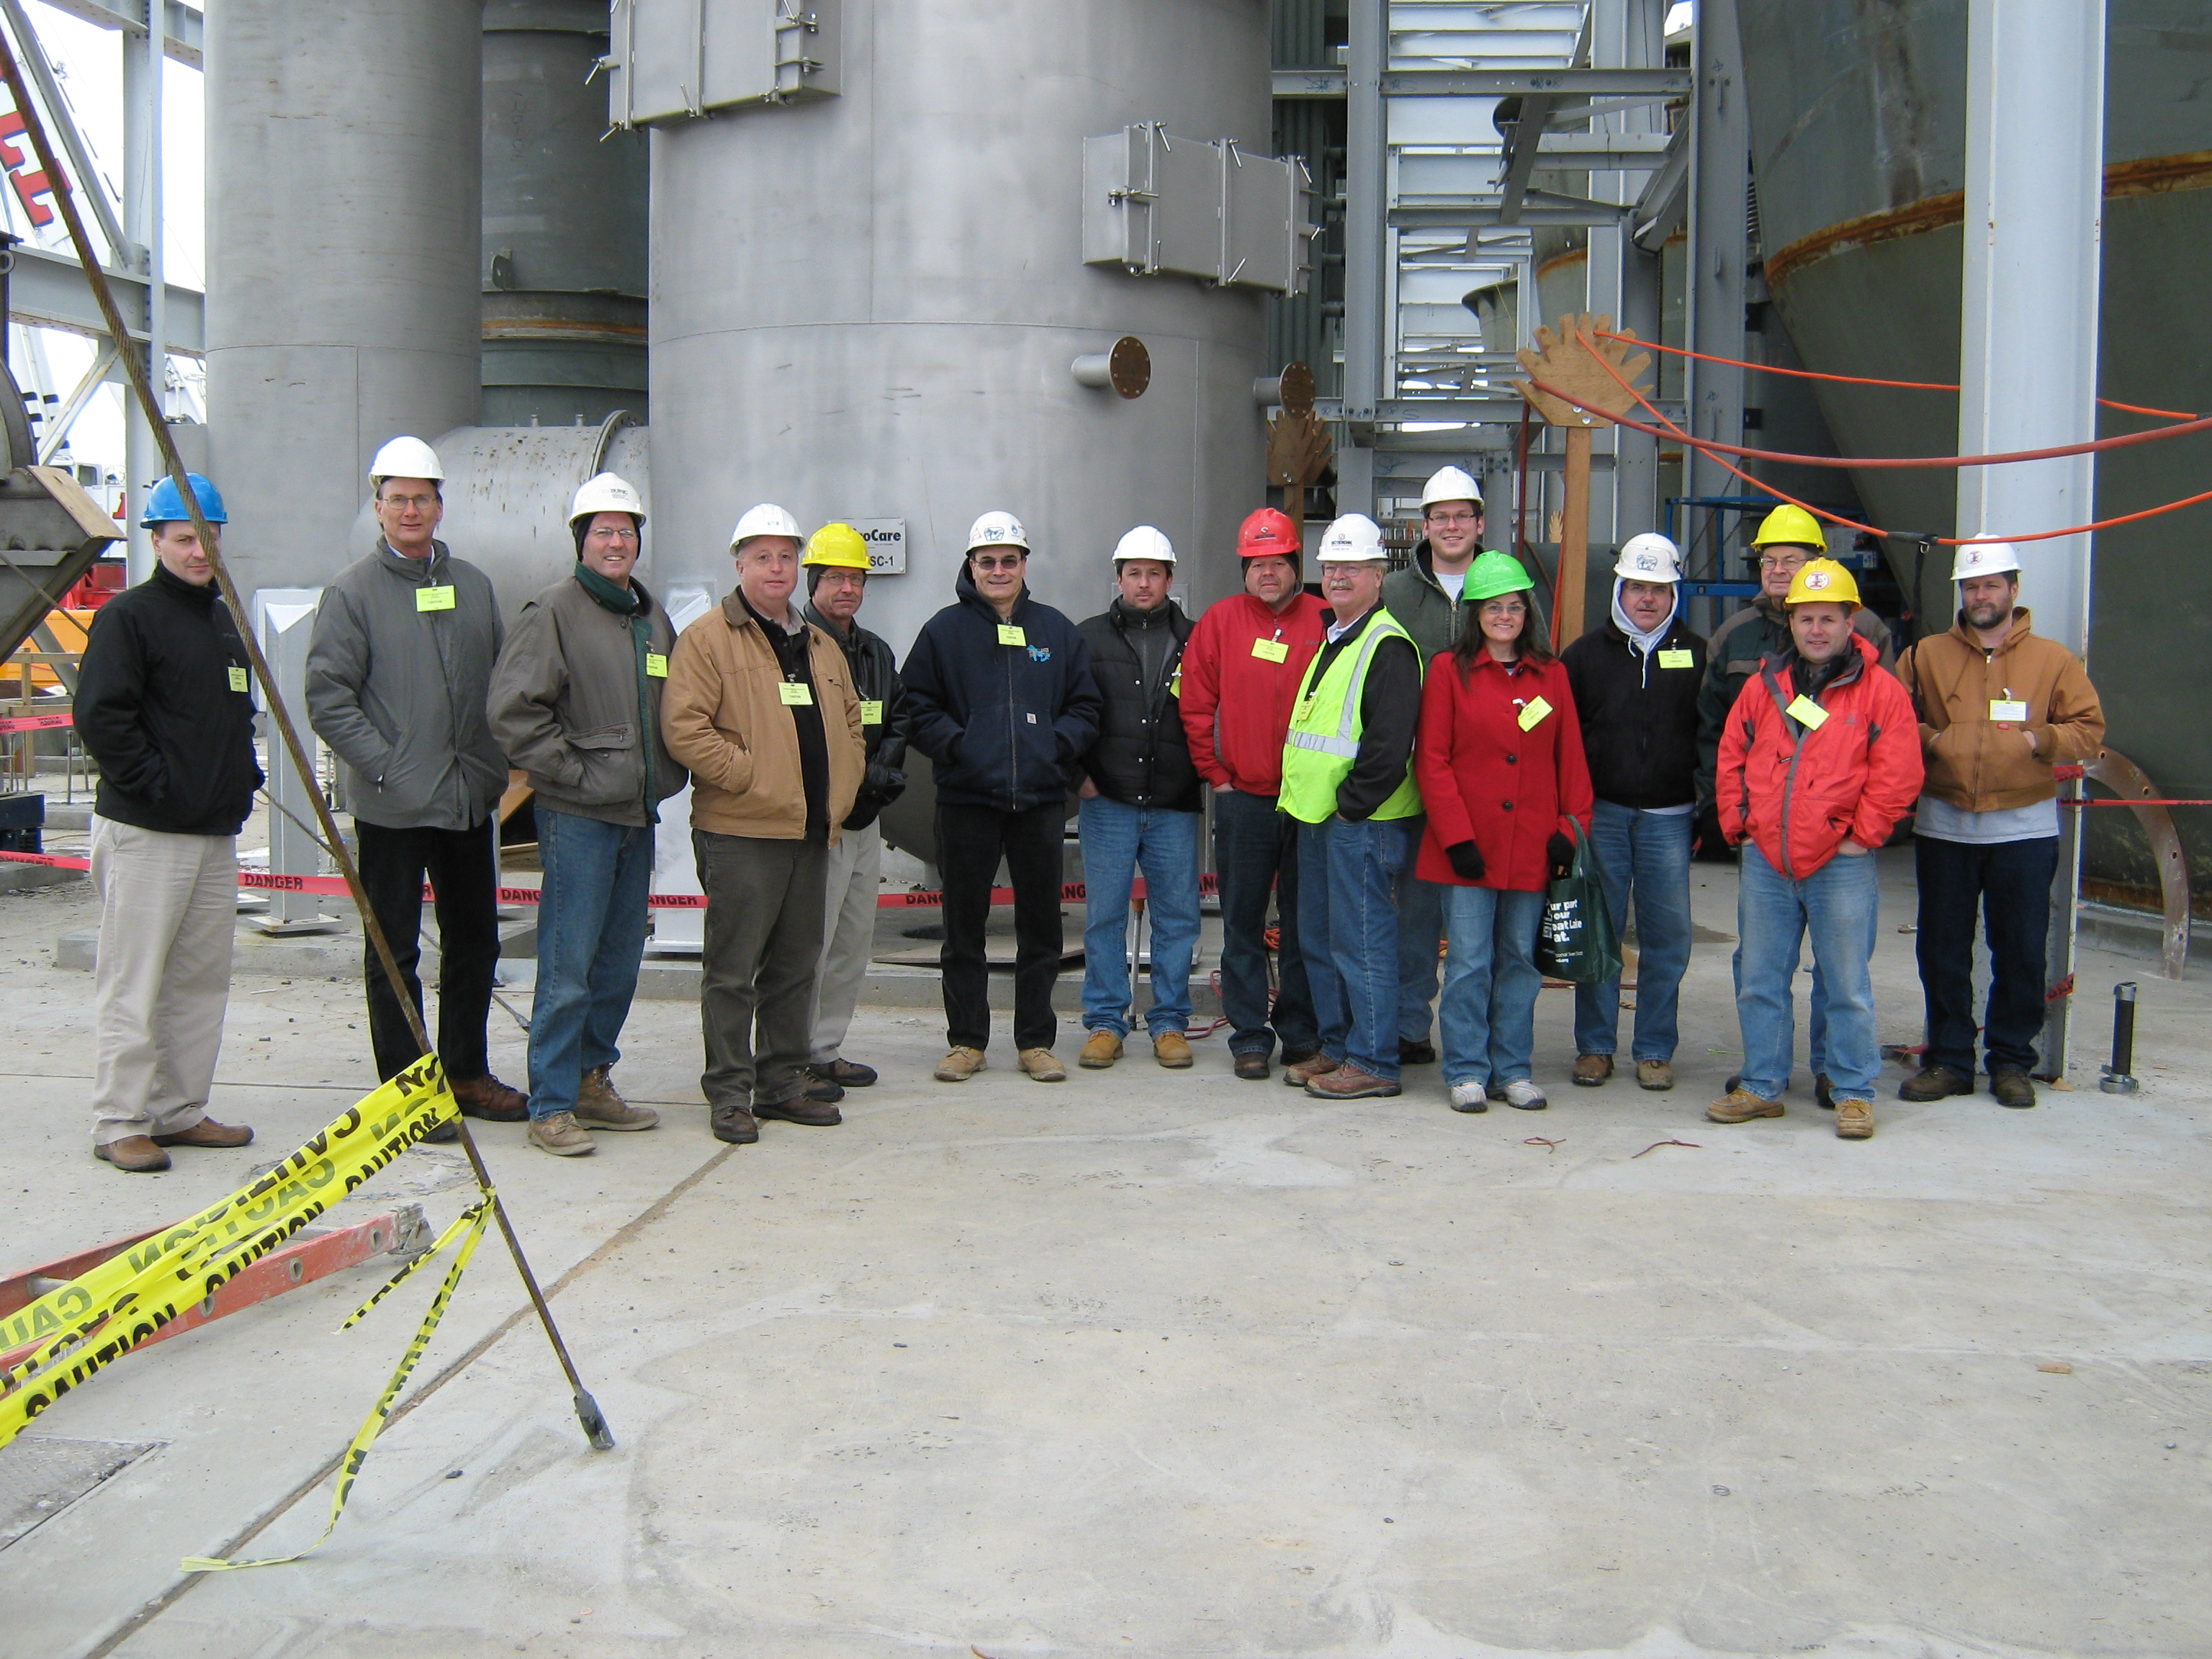 Image Caption: Members and guests visit the Northeast Ohio Regional Sewer District's Southerly Waste Water Treatment Plant in the Cleveland suburb of Cuyahoga Hts.